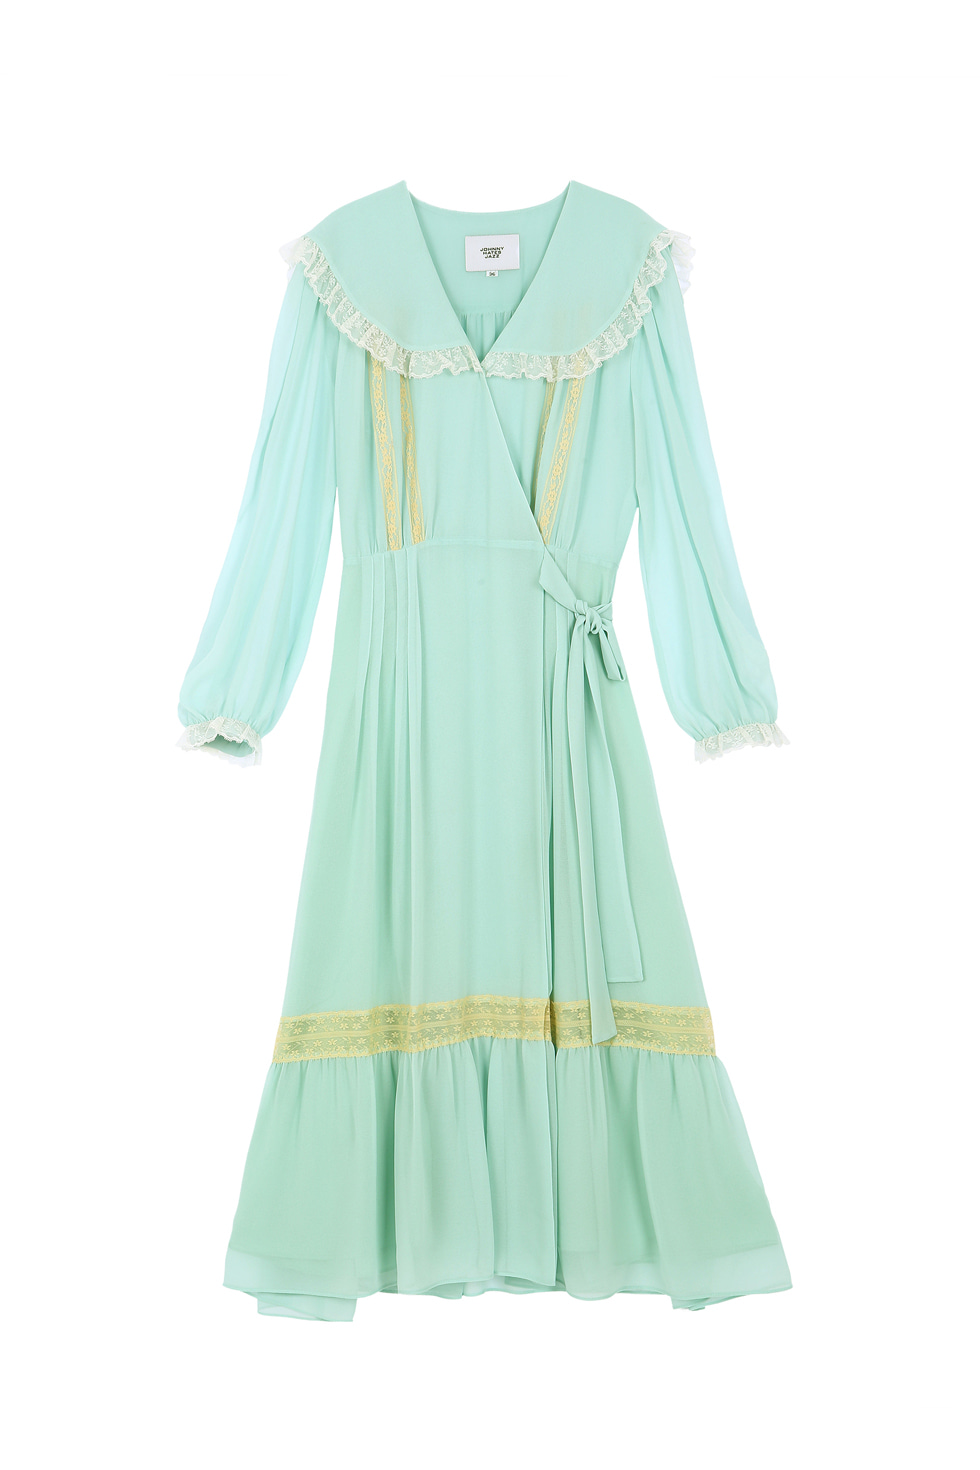 LACE CHIFFON DRESS - MINT